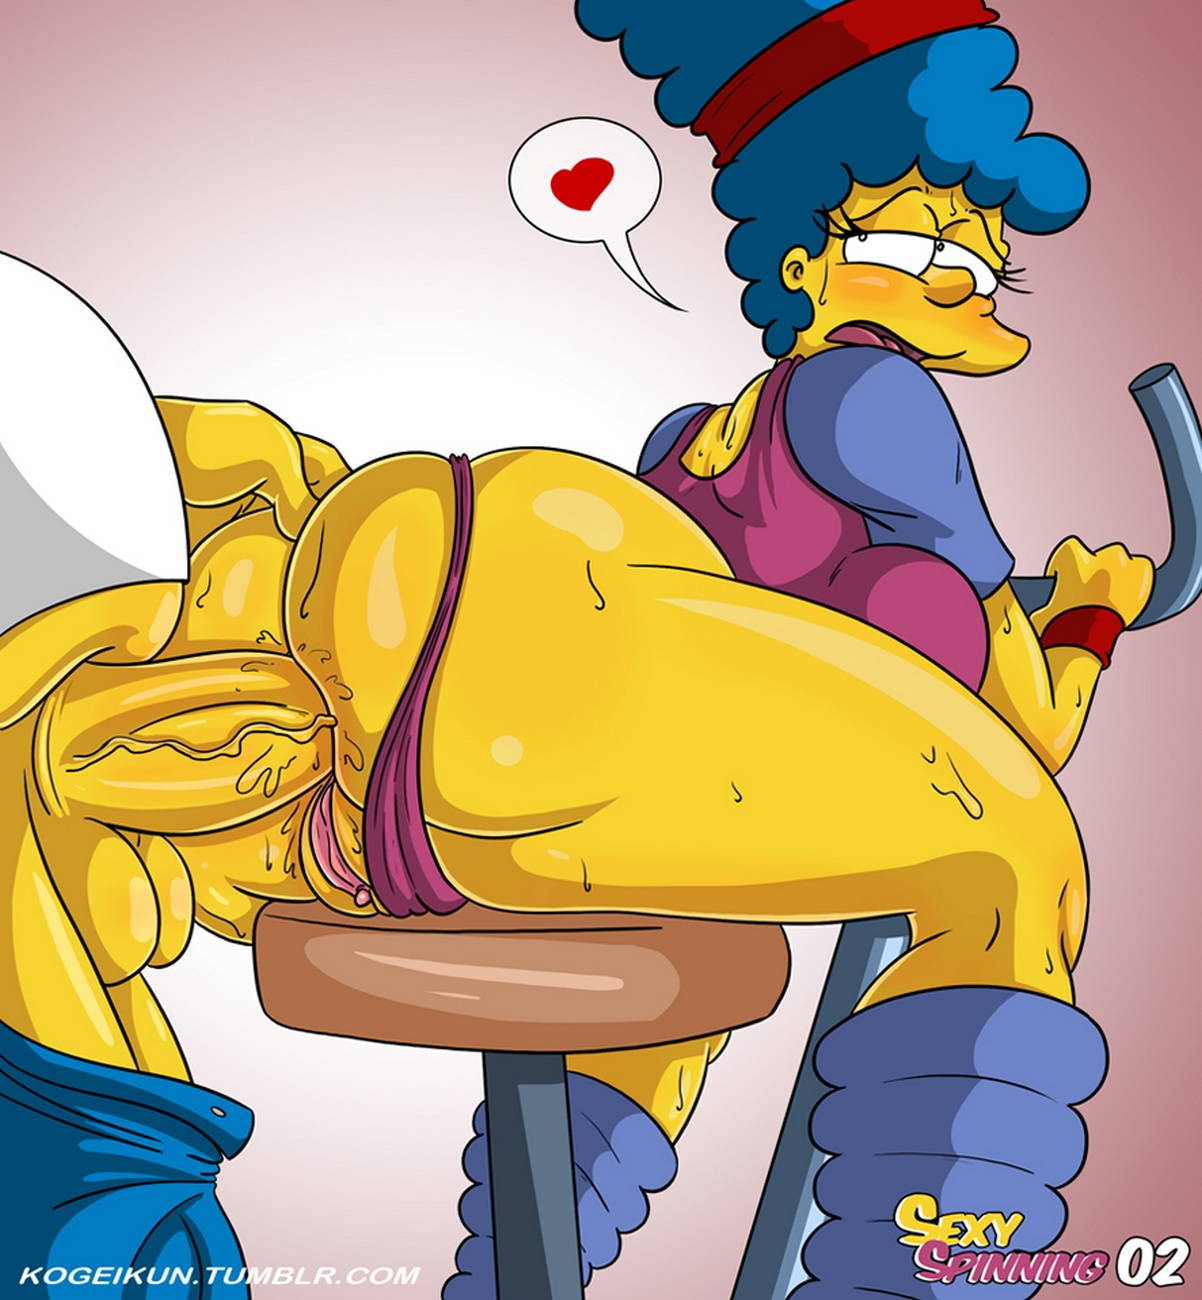 steele-porno-marge-simpsons-sexy-sex-with